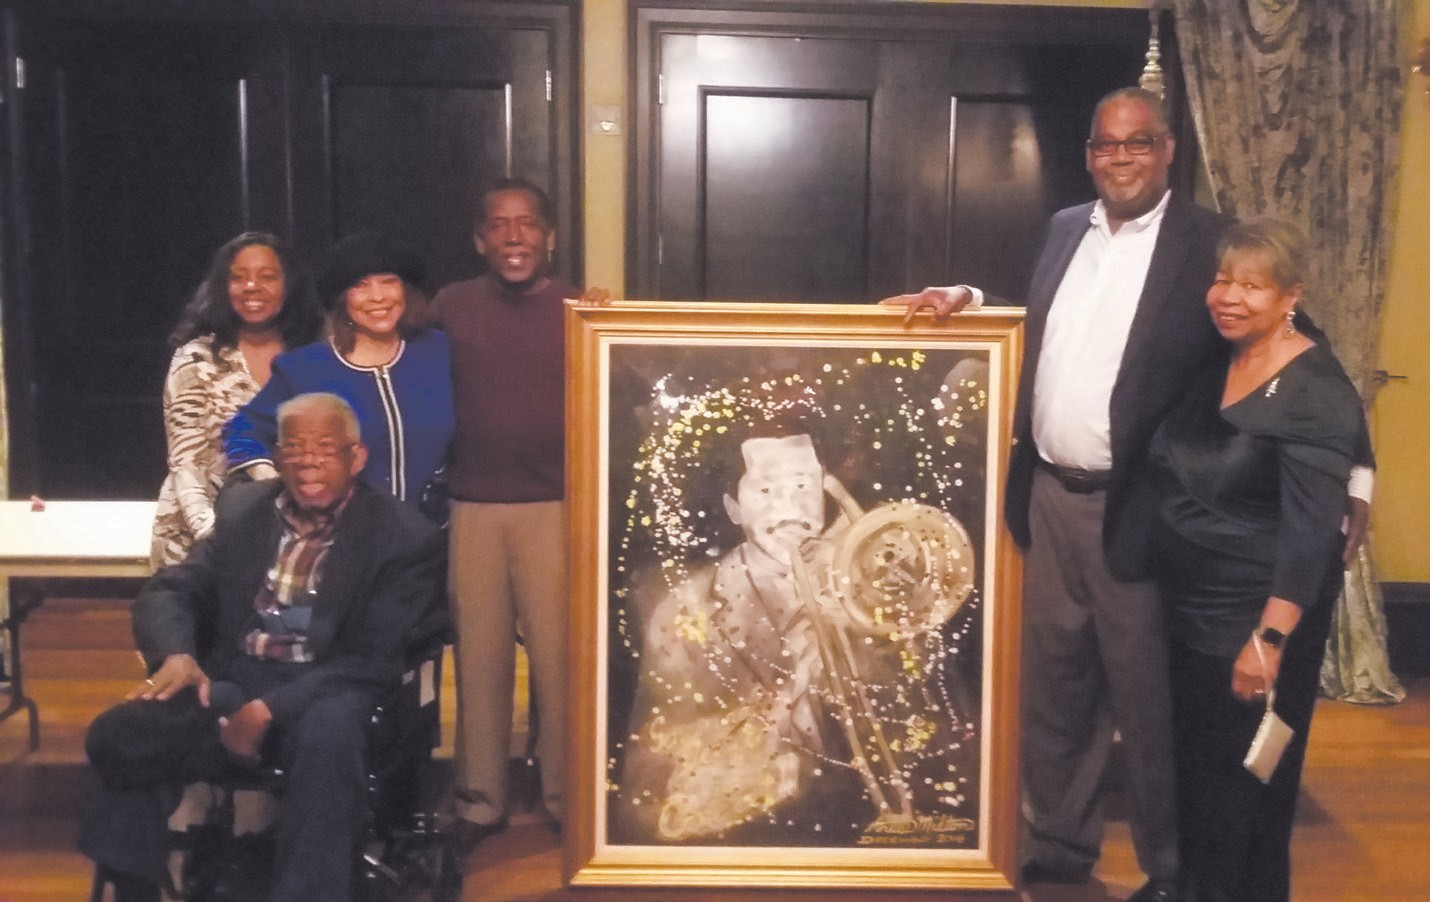 Ron Gantt (right) shown with wife after winning silent auction of painting of Jazz Artist Teddy Adams. Teddy Adams (left) is pictured with the Johnson family